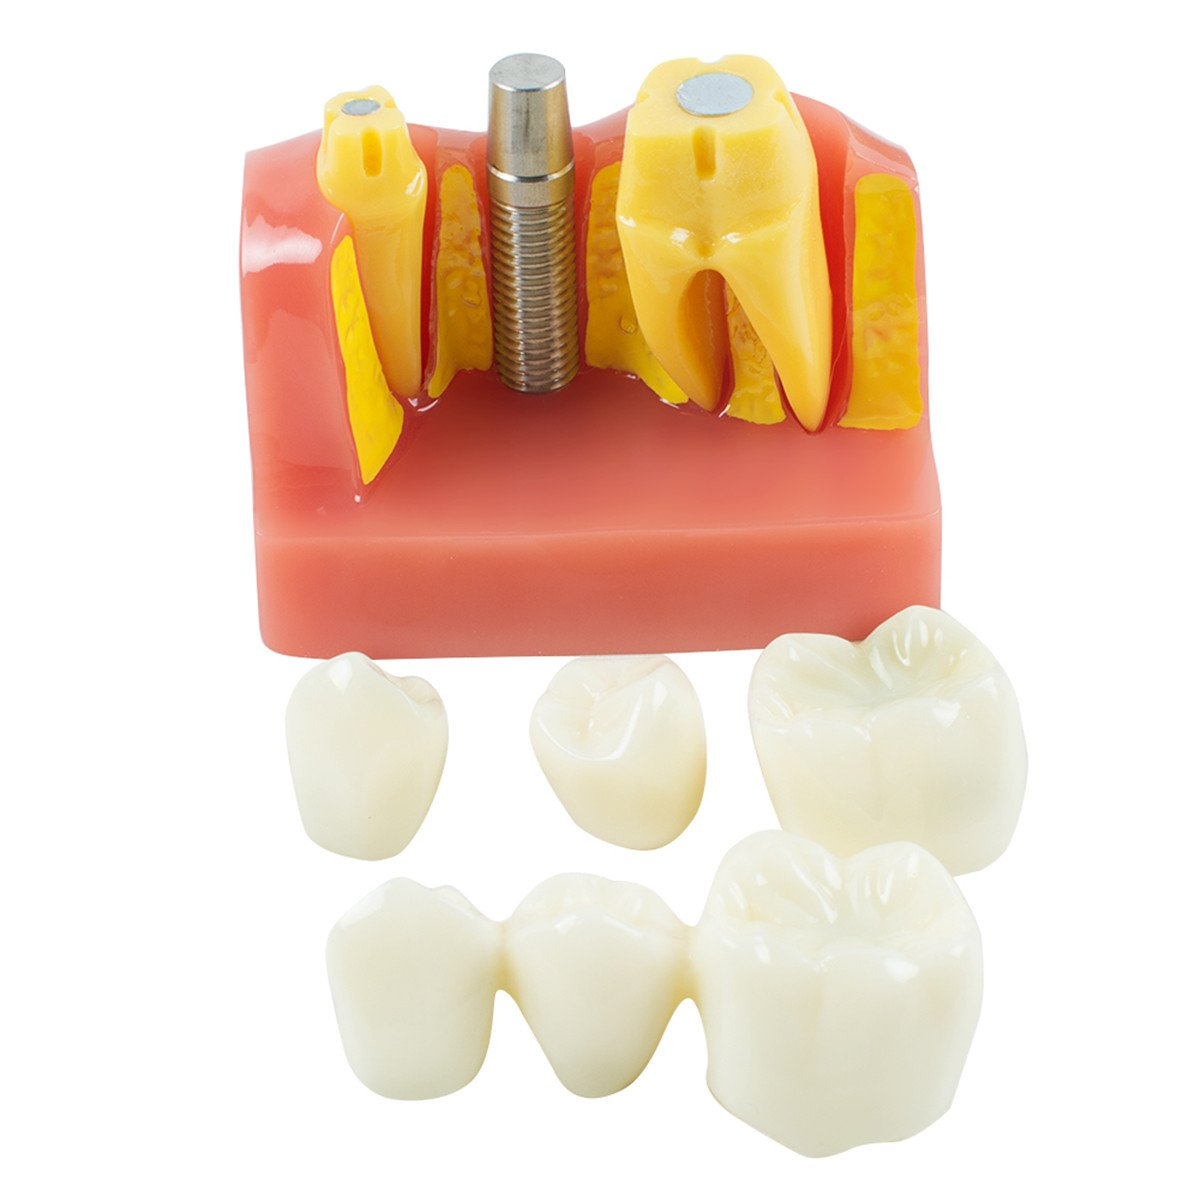 Teeth Model,Angelwill Dental Demonstration Implant Analysis Model with Crown Bridge for Student Learning Education(Shipped from US)